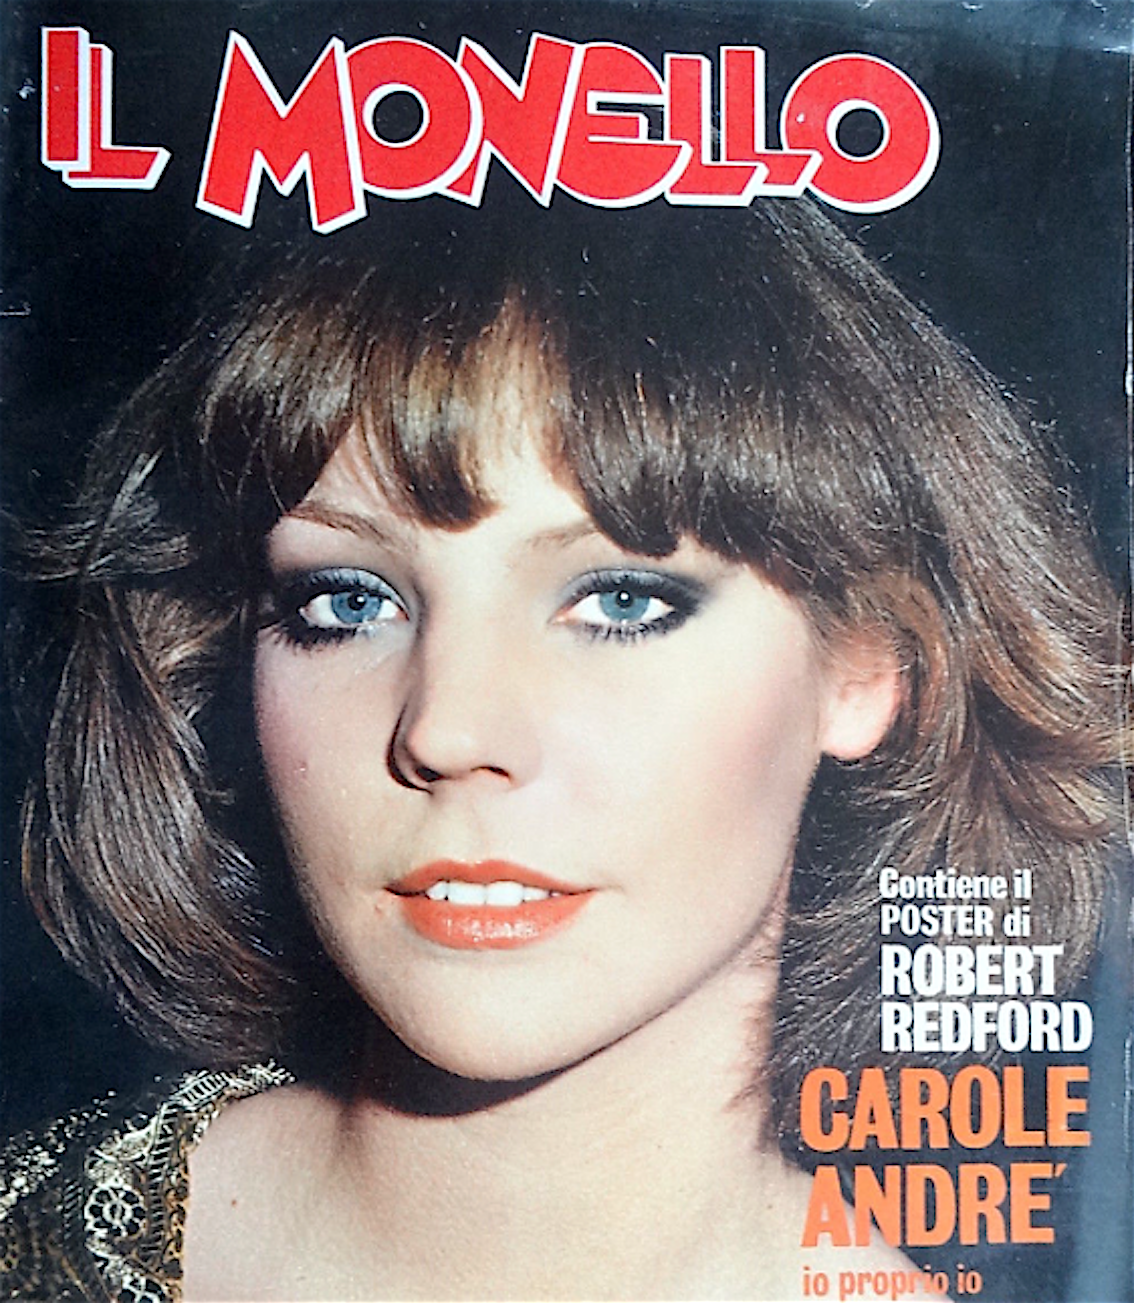 carole_andré_monello_1976